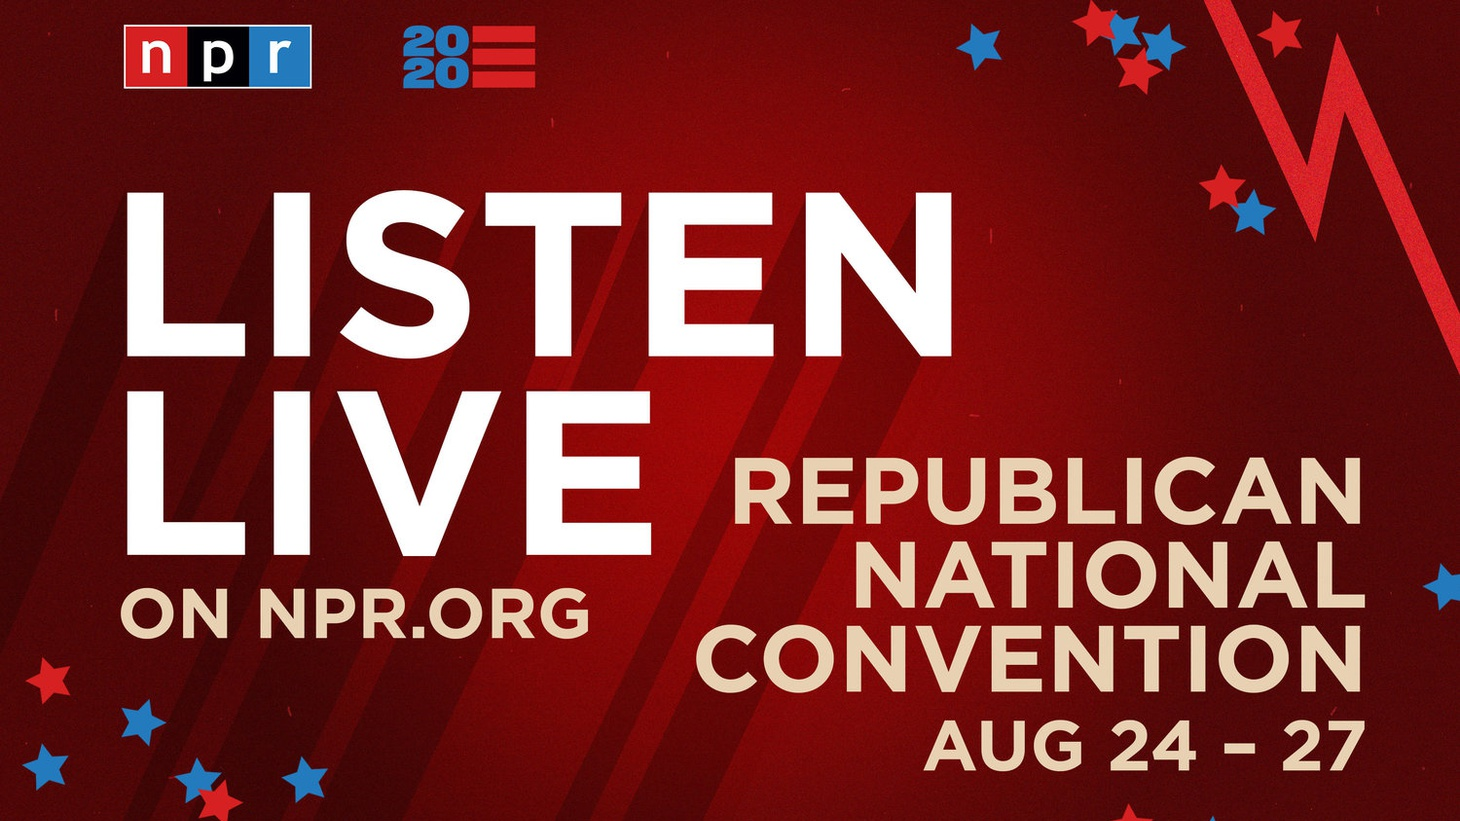 The four-day Republican National Convention got underway Monday and  NPR  haslive coverage as theGOP re-nominates President Donald Trump as their candidate. Tune into KCRW at 6-8pm PST for the full coverage.